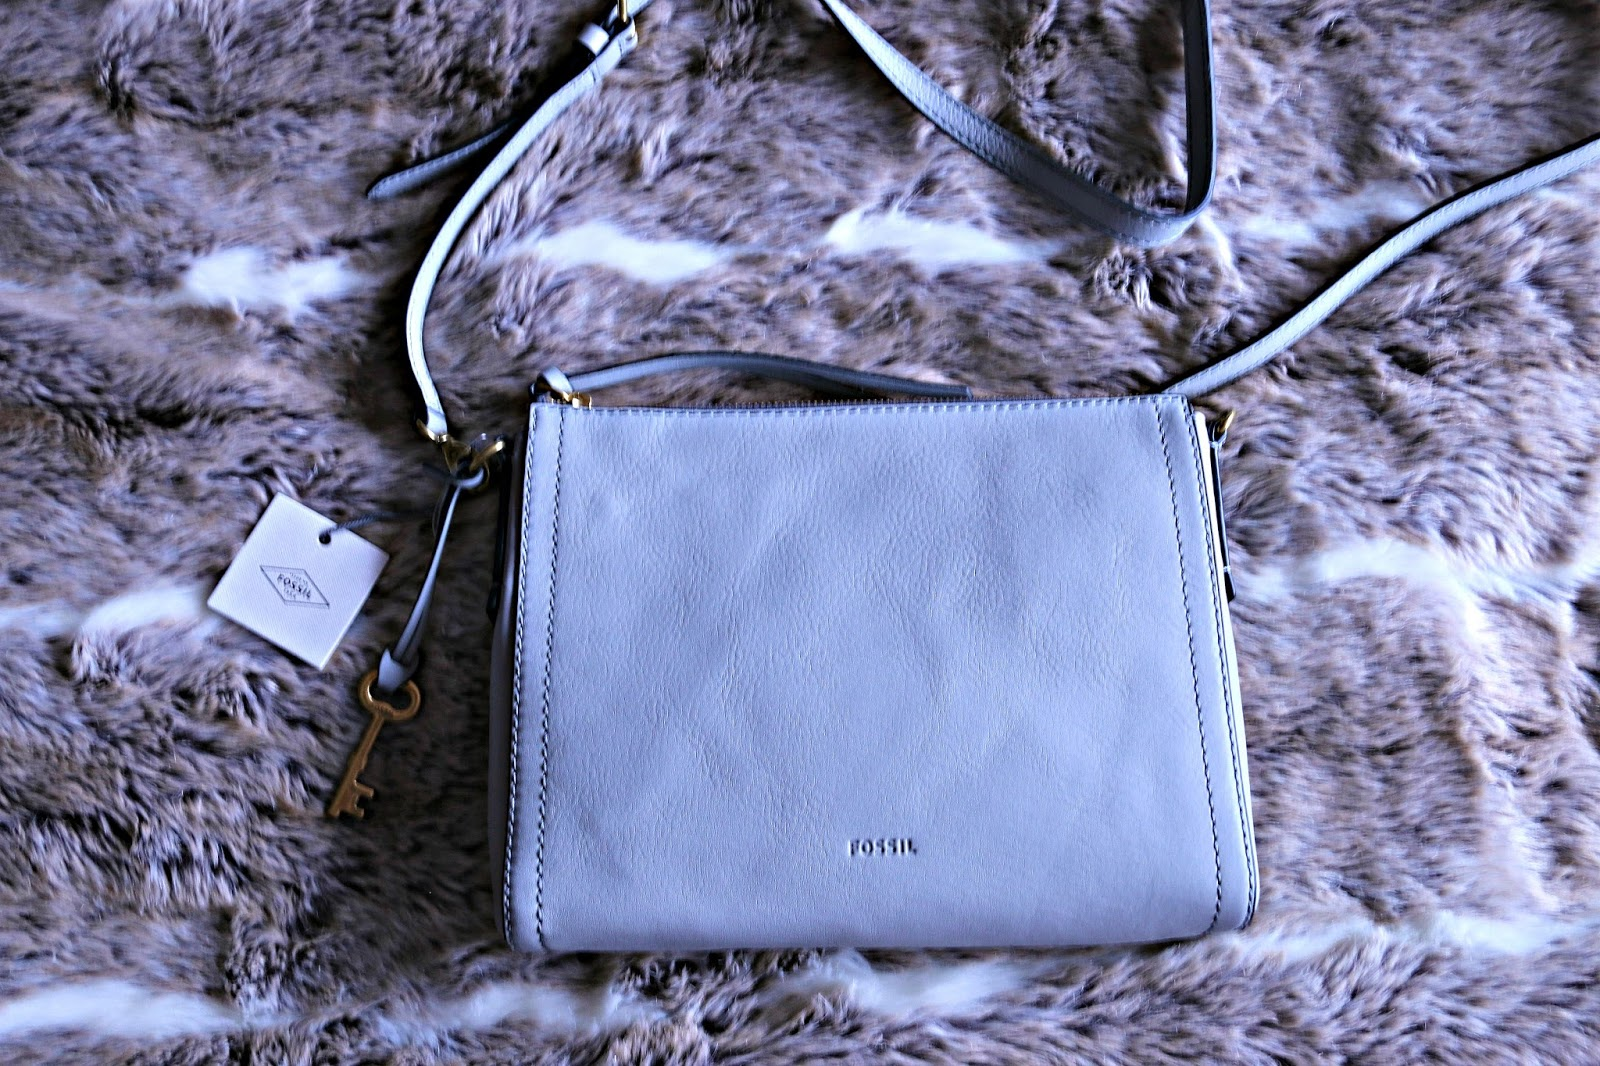 Fossil Ladies Cross Body Bag Image